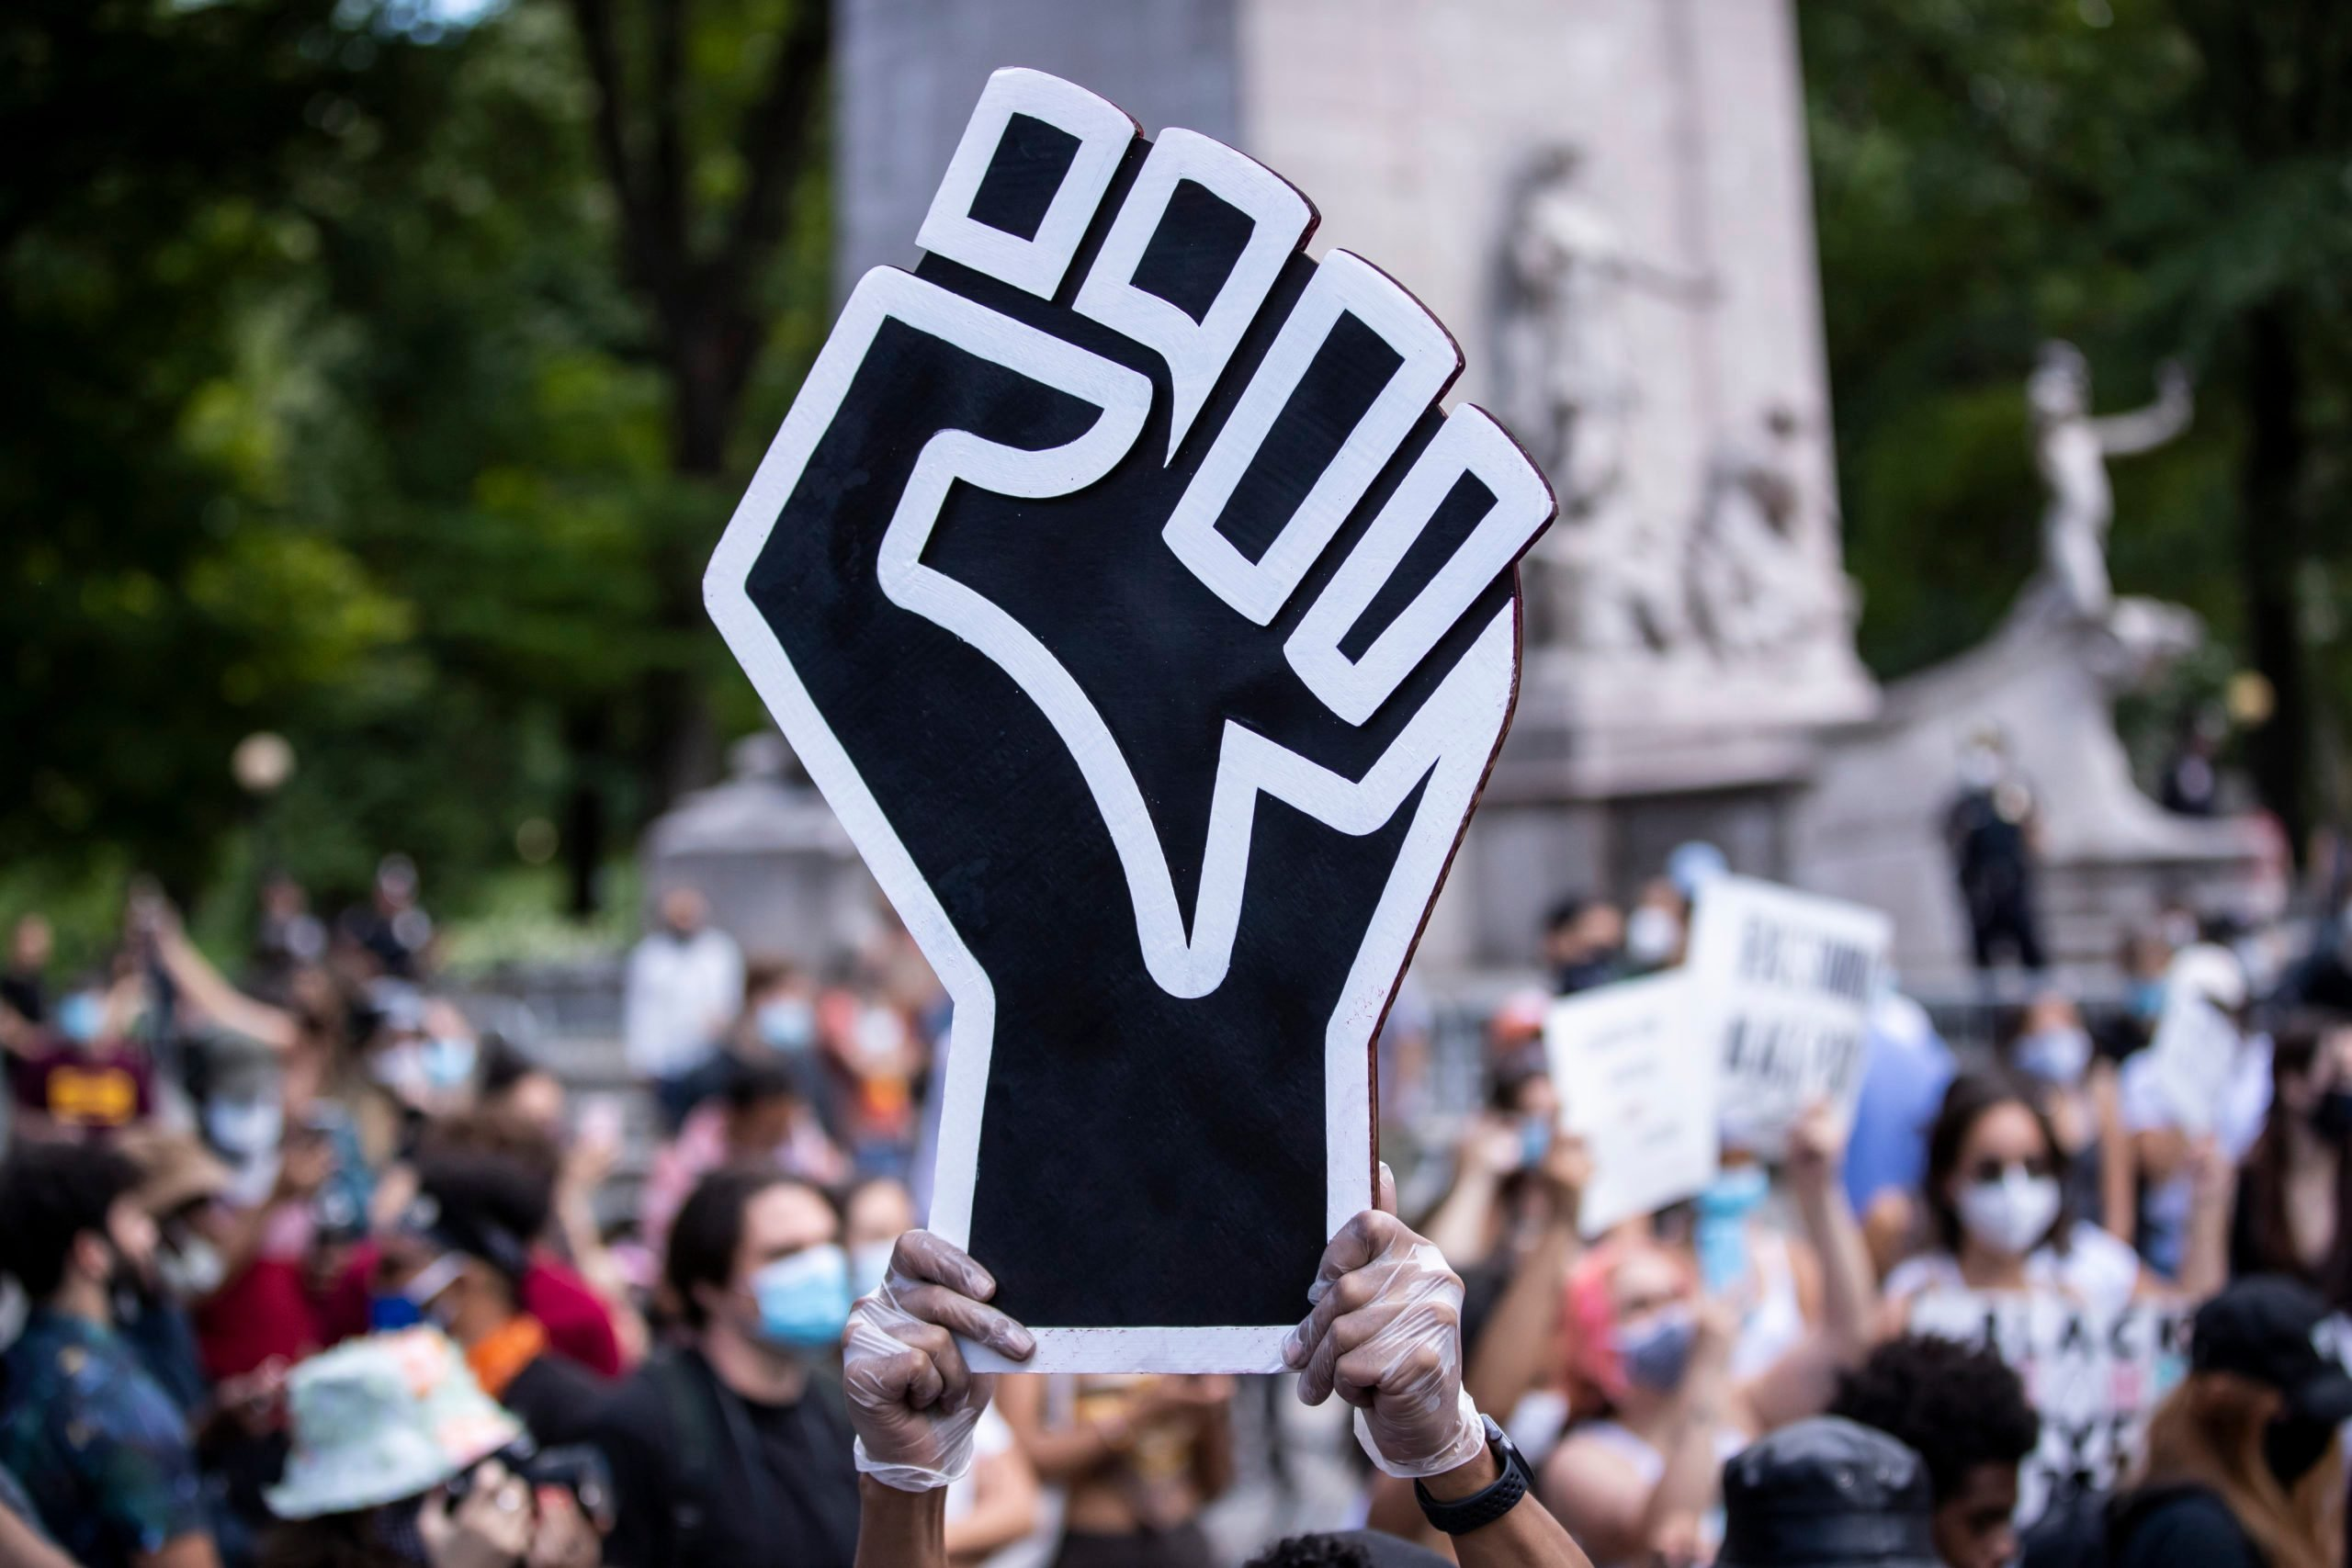 A protestor holds up a large black power fist in the middle of a crowd gathered at Columbus Circle in New York City for a George Floyd Black Lives Matter Protest